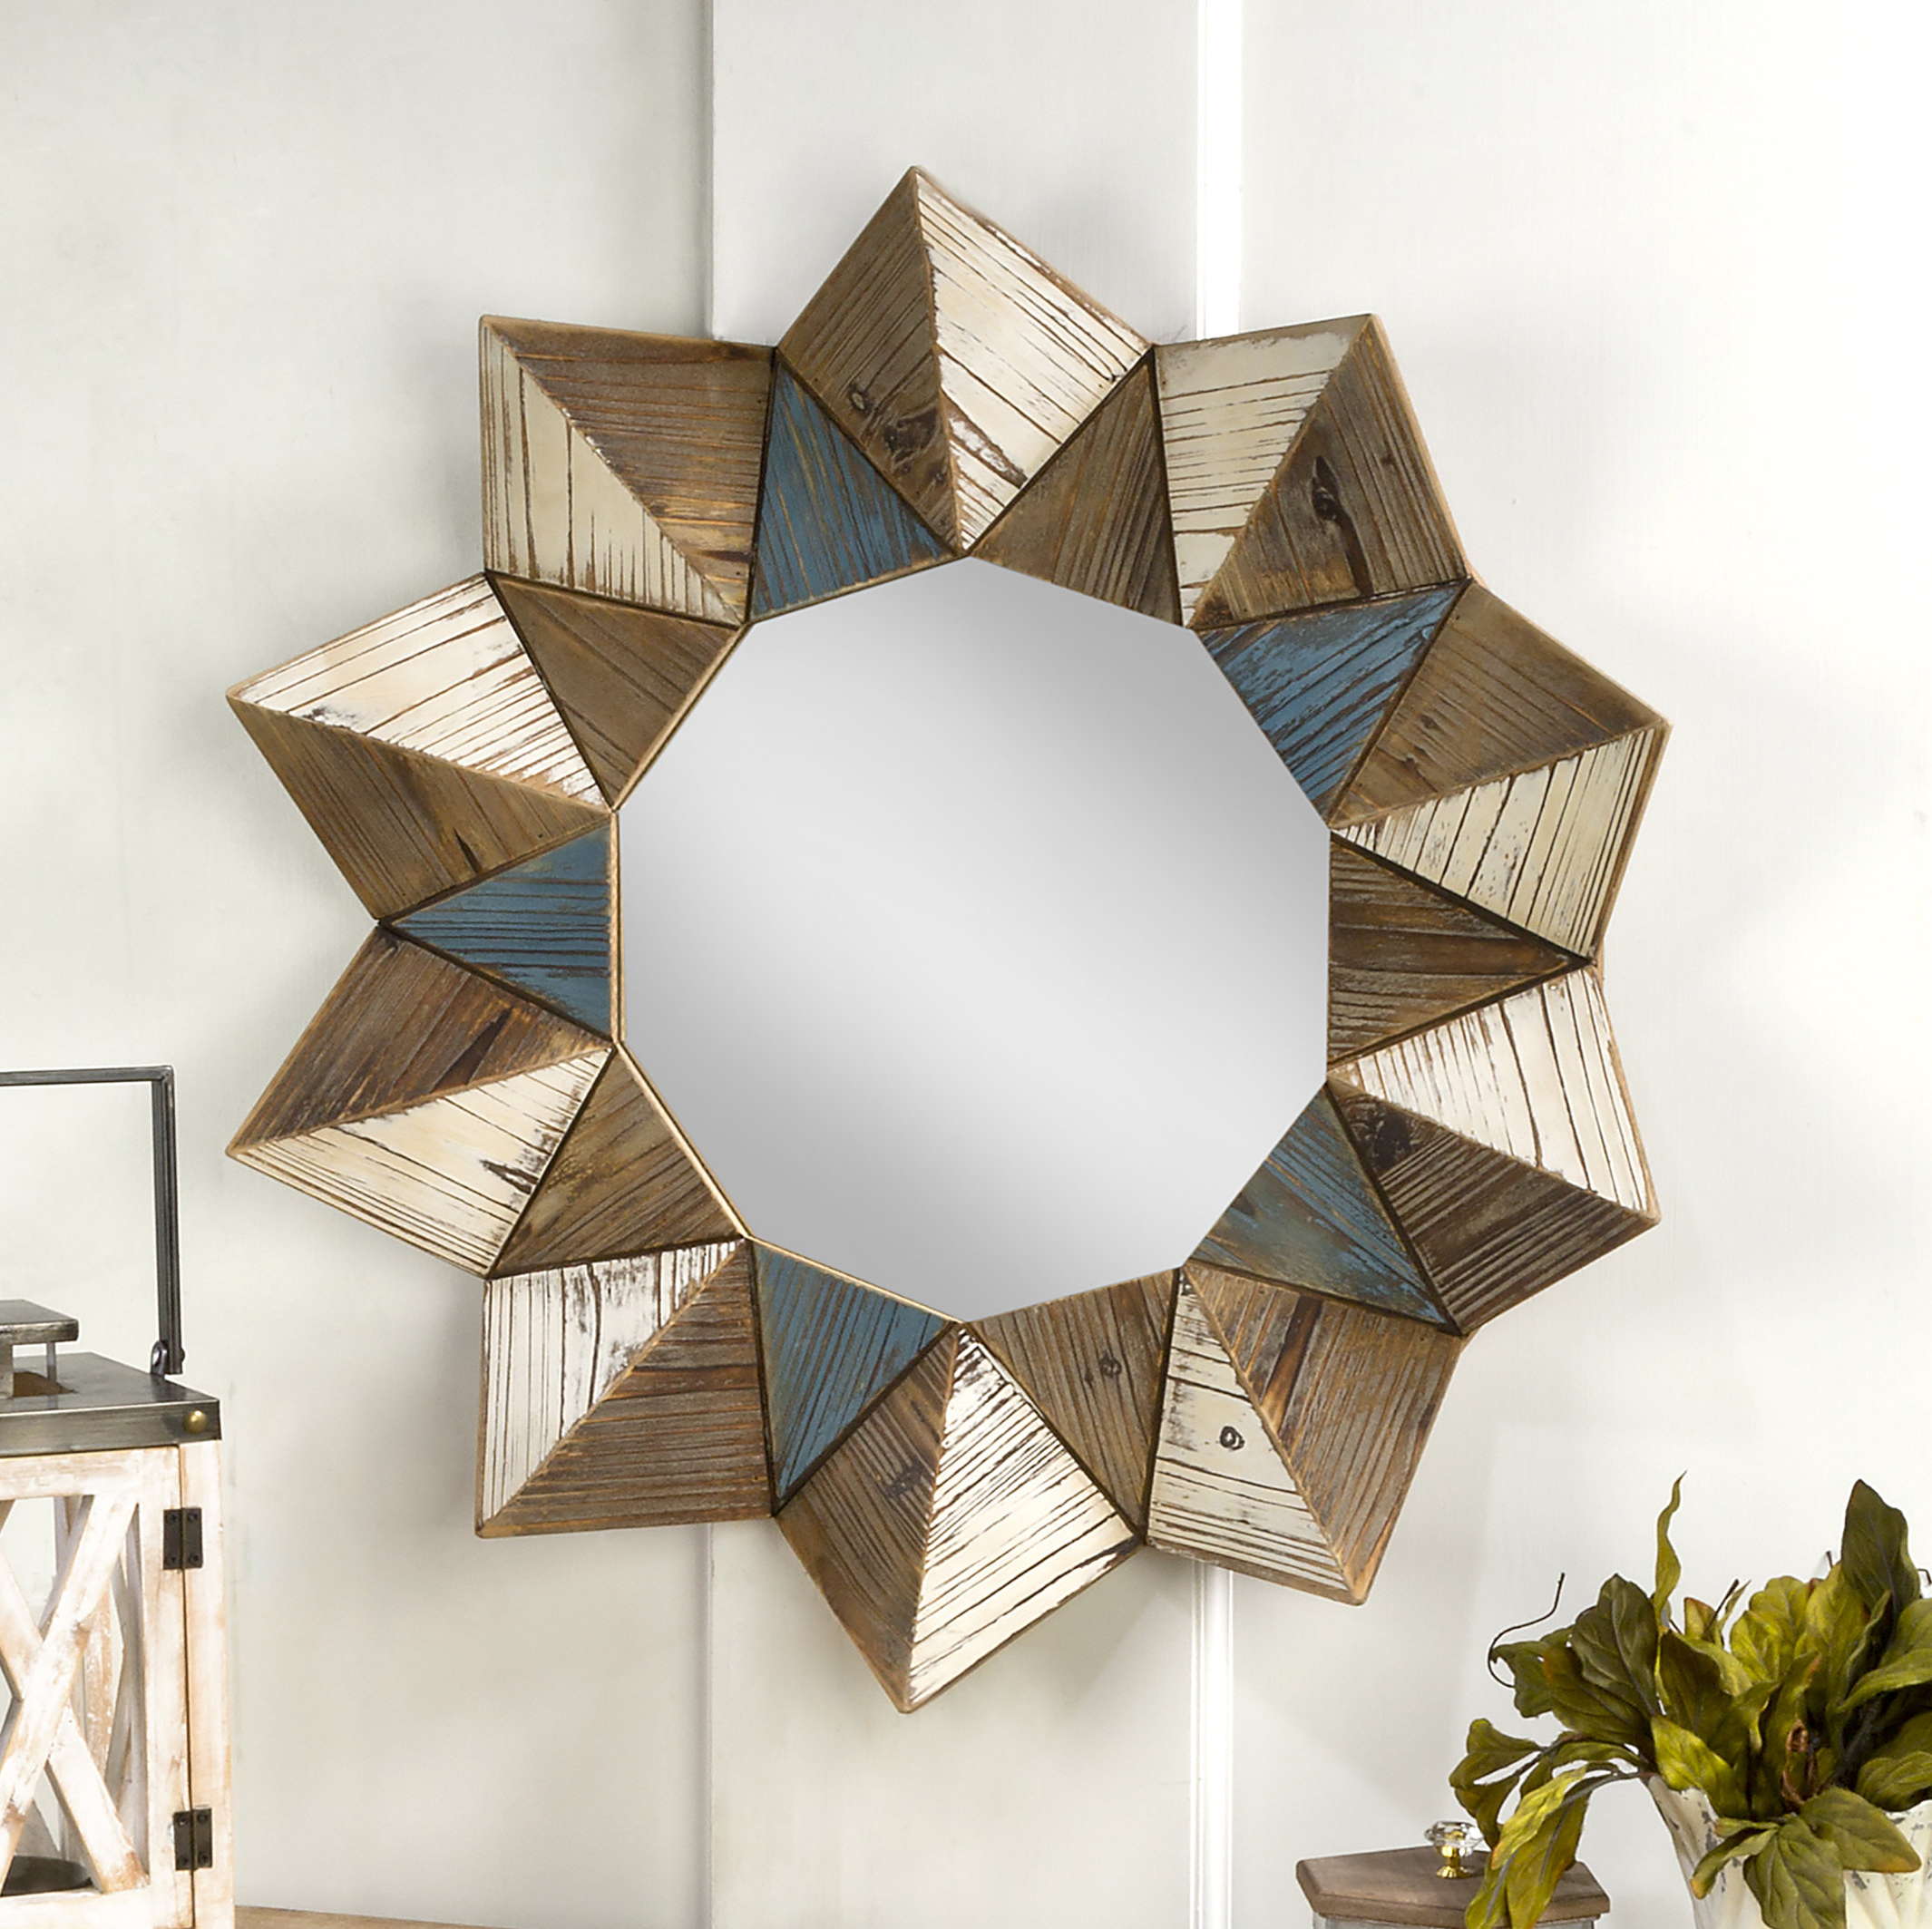 Ernest Geometric Eclectic Wall Accent Mirror Pertaining To Well Known Geometric Wall Mirrors (Gallery 18 of 20)